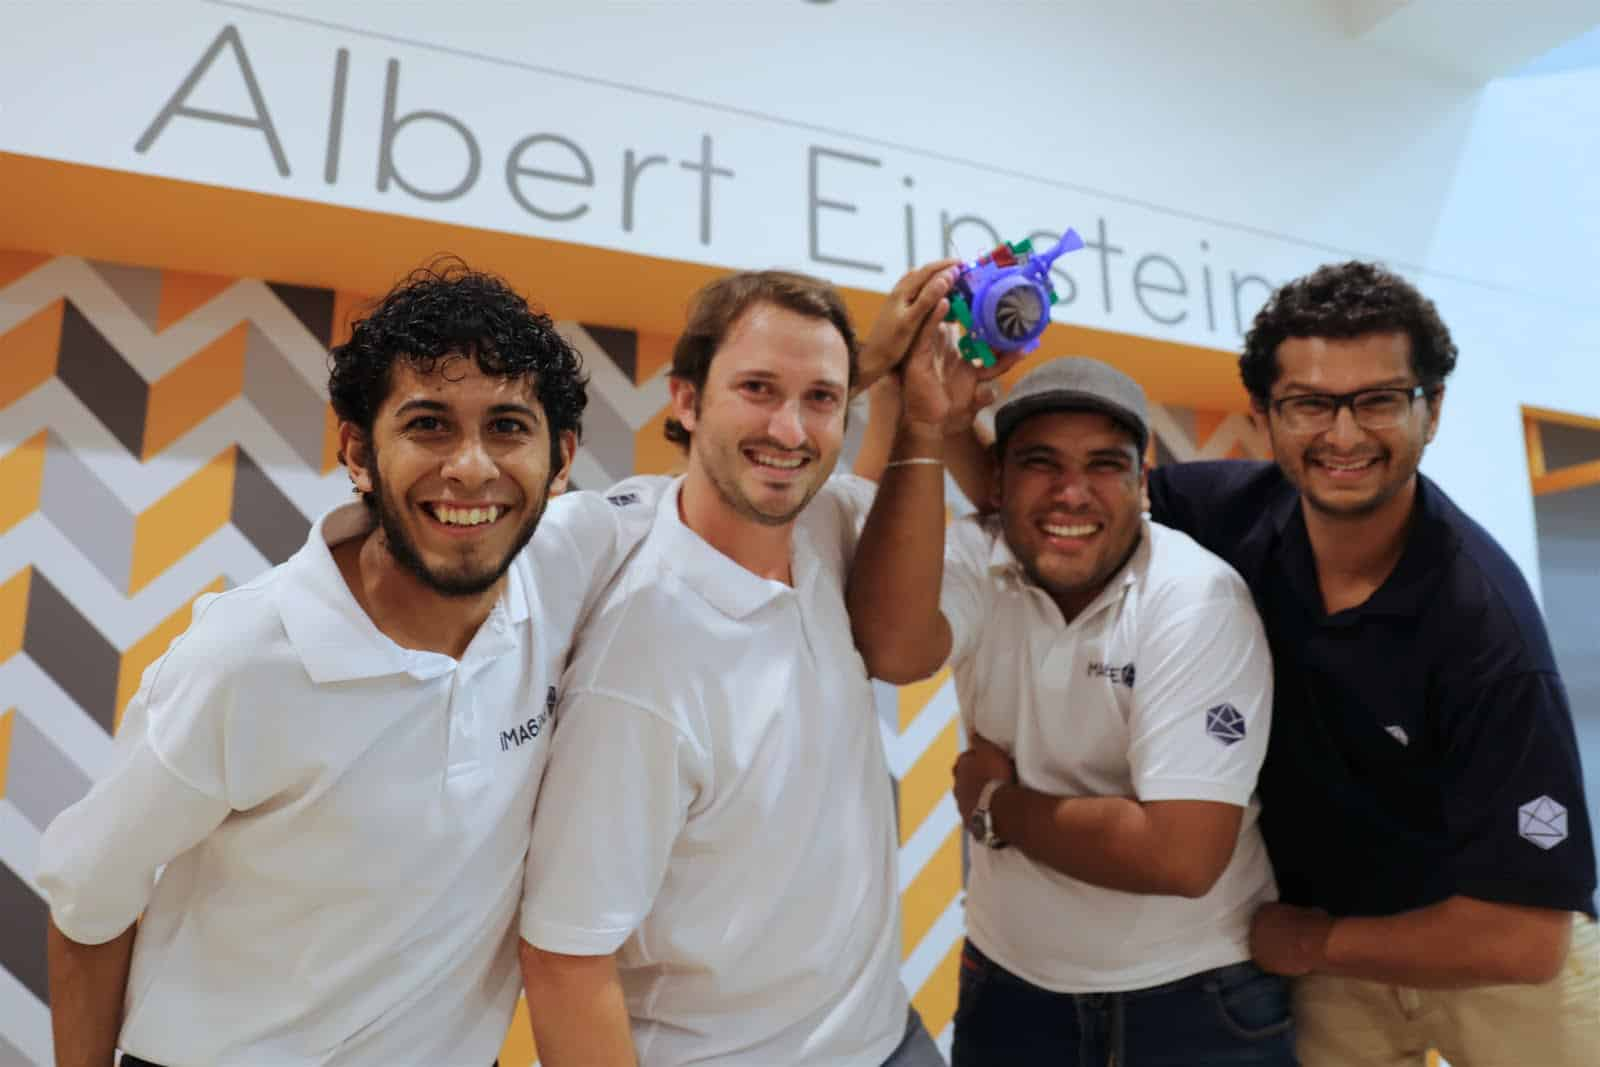 Bryan Navarro, Juan Carlos Martí, Hugo Sánchez and Javier Carvajal, winners of the 2016 Fishackathon